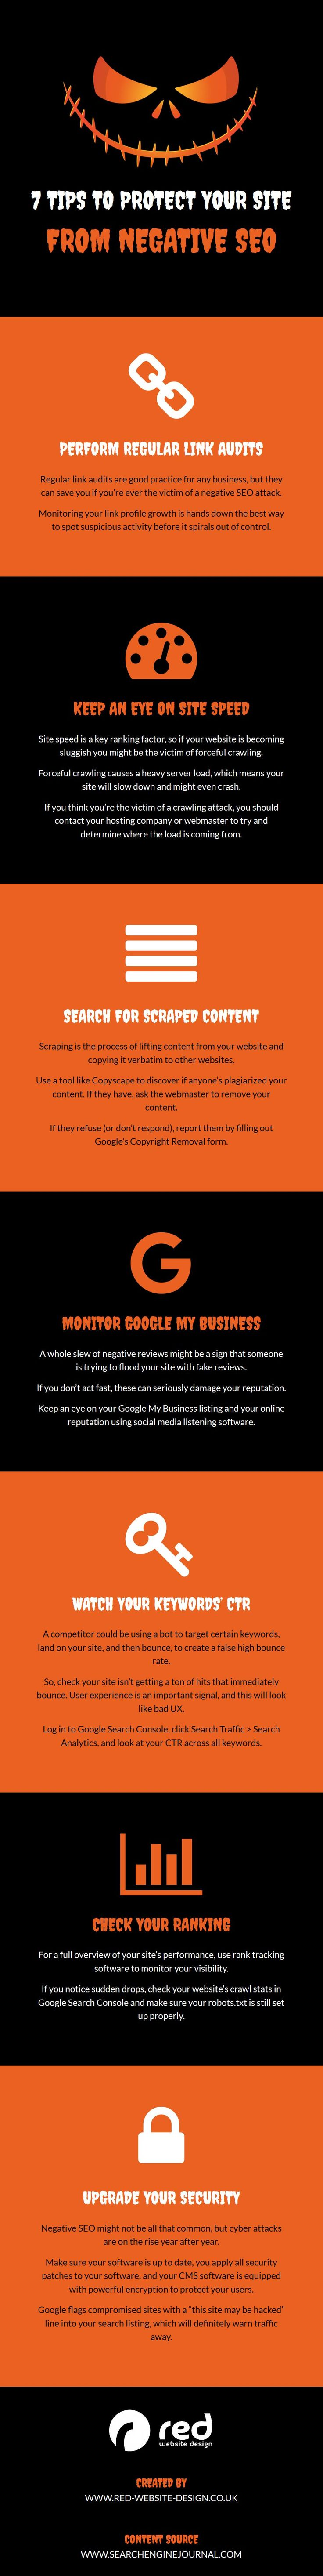 7 Tips to Protect Your Site from Negative SEO [Infographic]